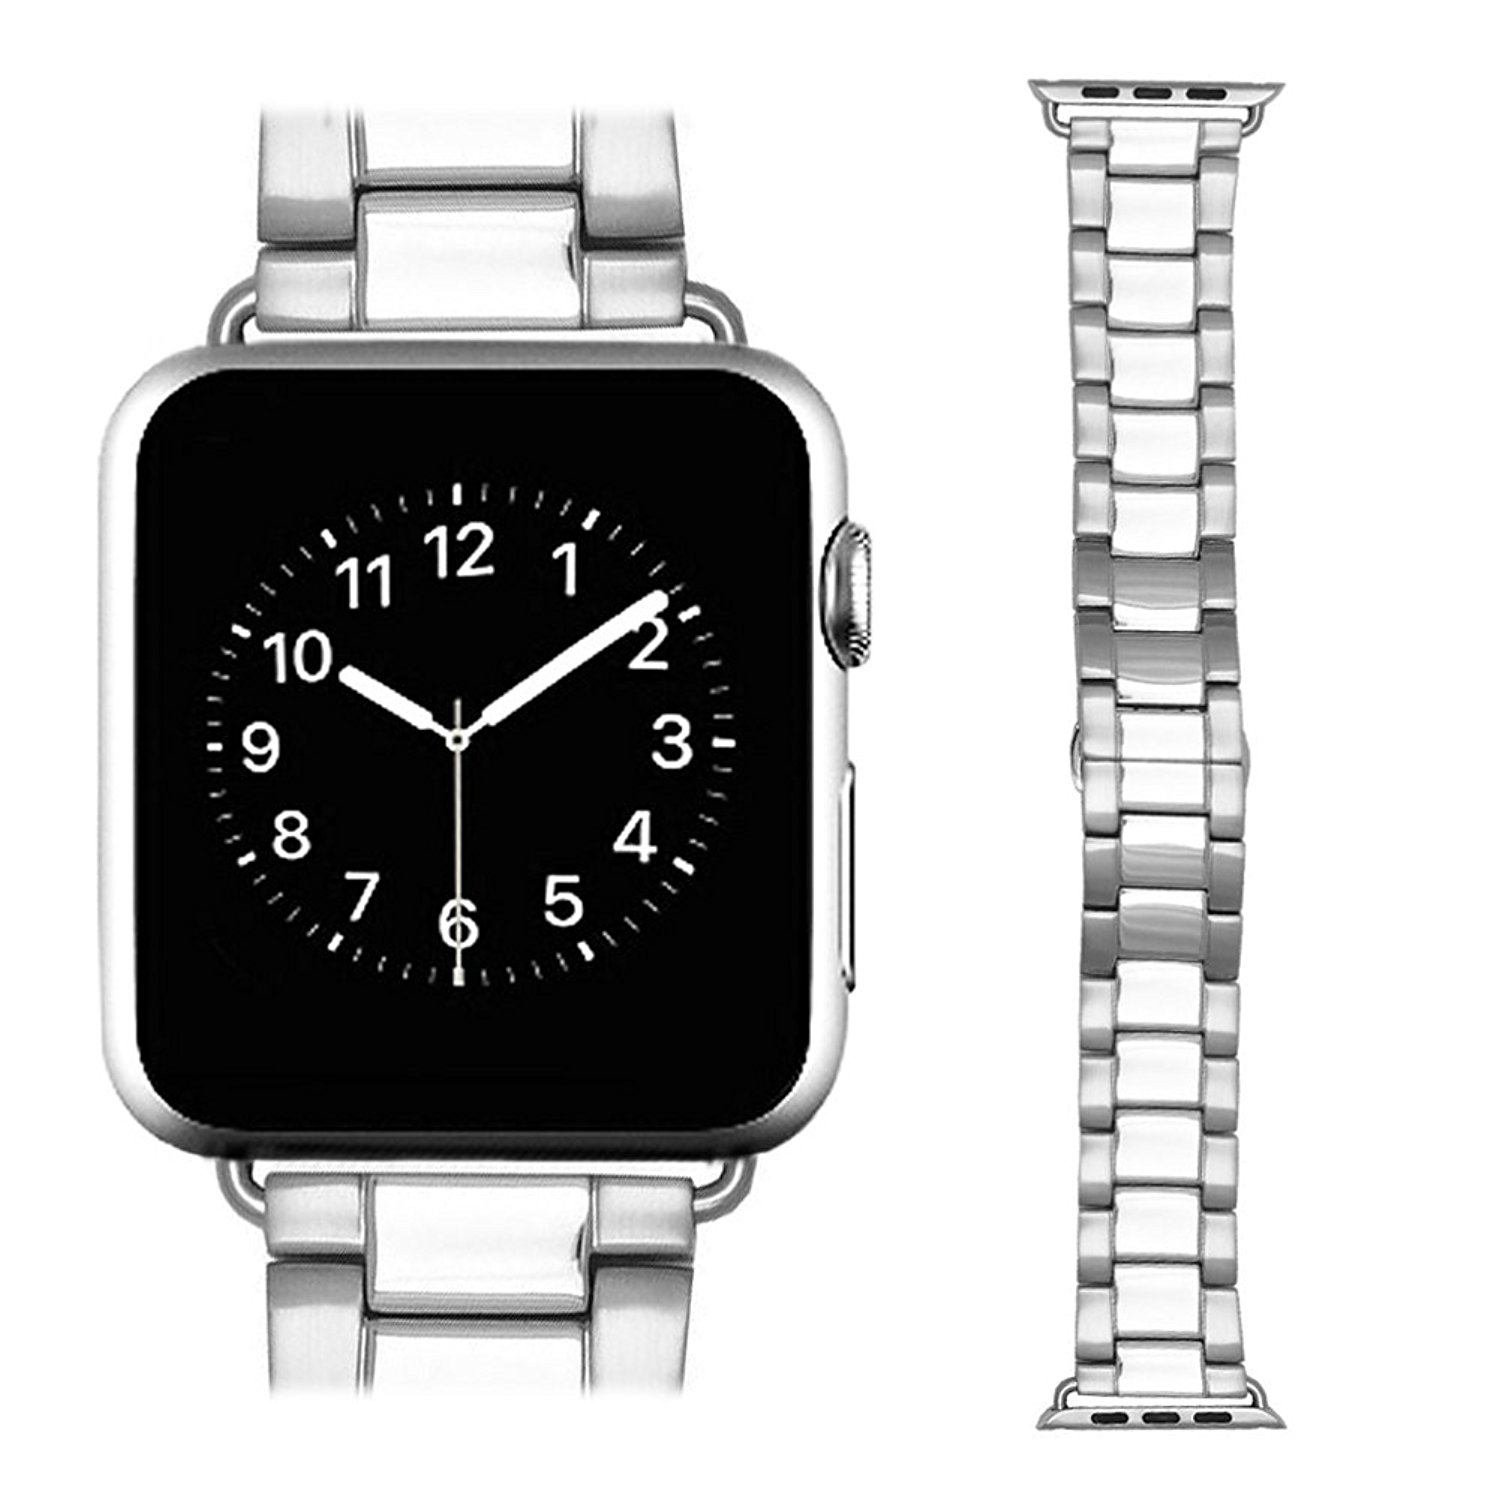 AWSTECH New 38mm Stainless Steel Replacement Smart Watch Band Wrist Strap Bracelet with Butterfly Buckle Clasp for Apple Watch All Models Silver